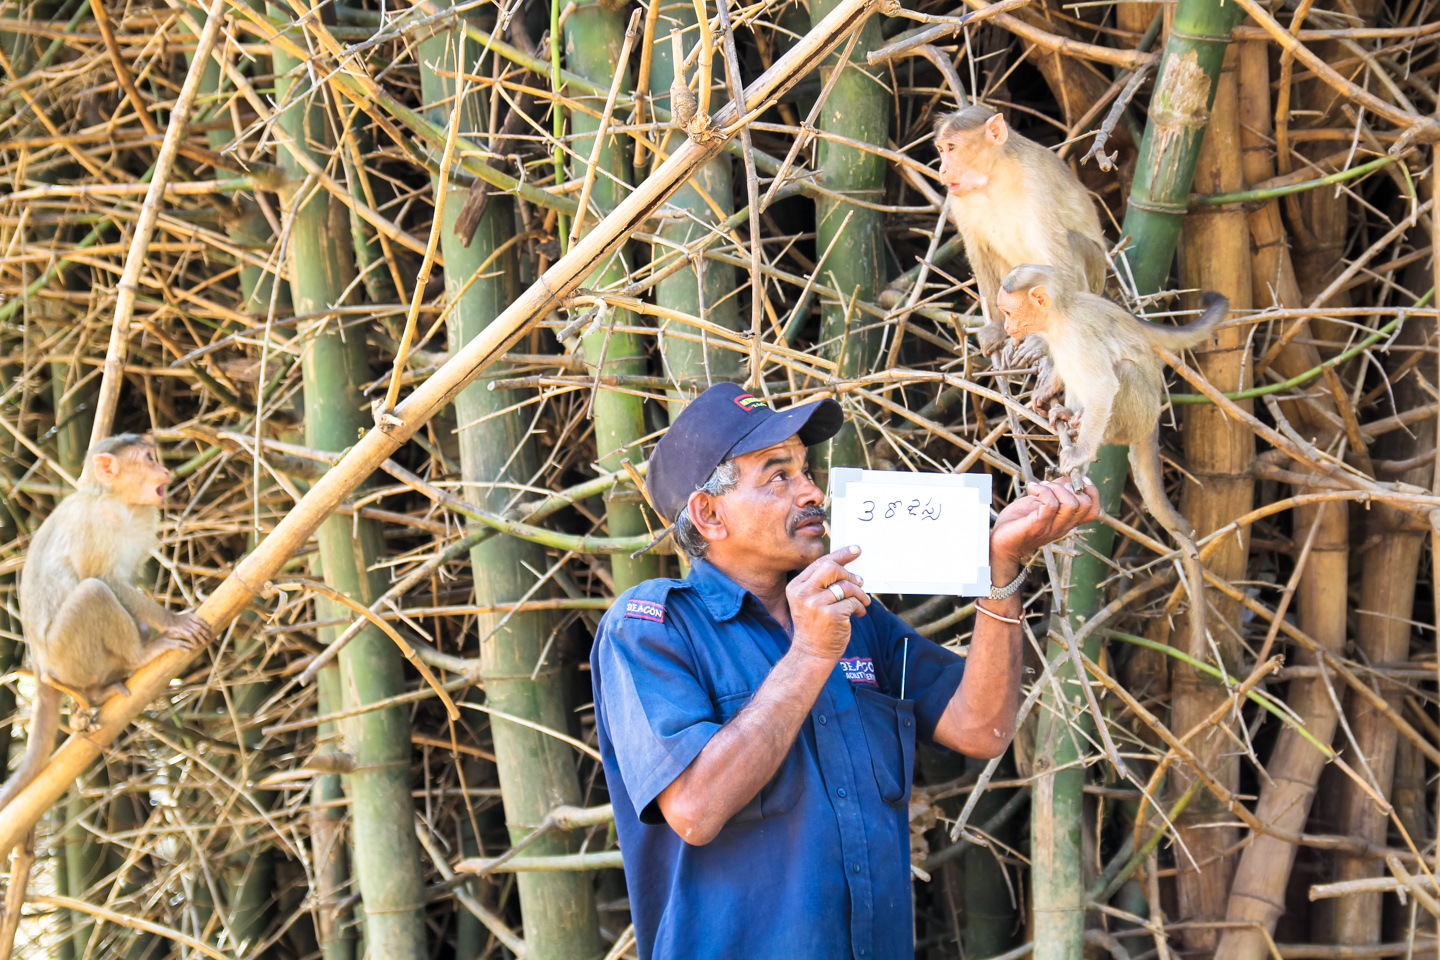 Shiv Shankar feeds monkeys at Lalbagh Botanical Gardens in Bangalore. Every day he gives them peanuts and water at their home in a bamboo grove near the Rose Garden. Then he drinks his favorite brand of tea: 3 Roses.